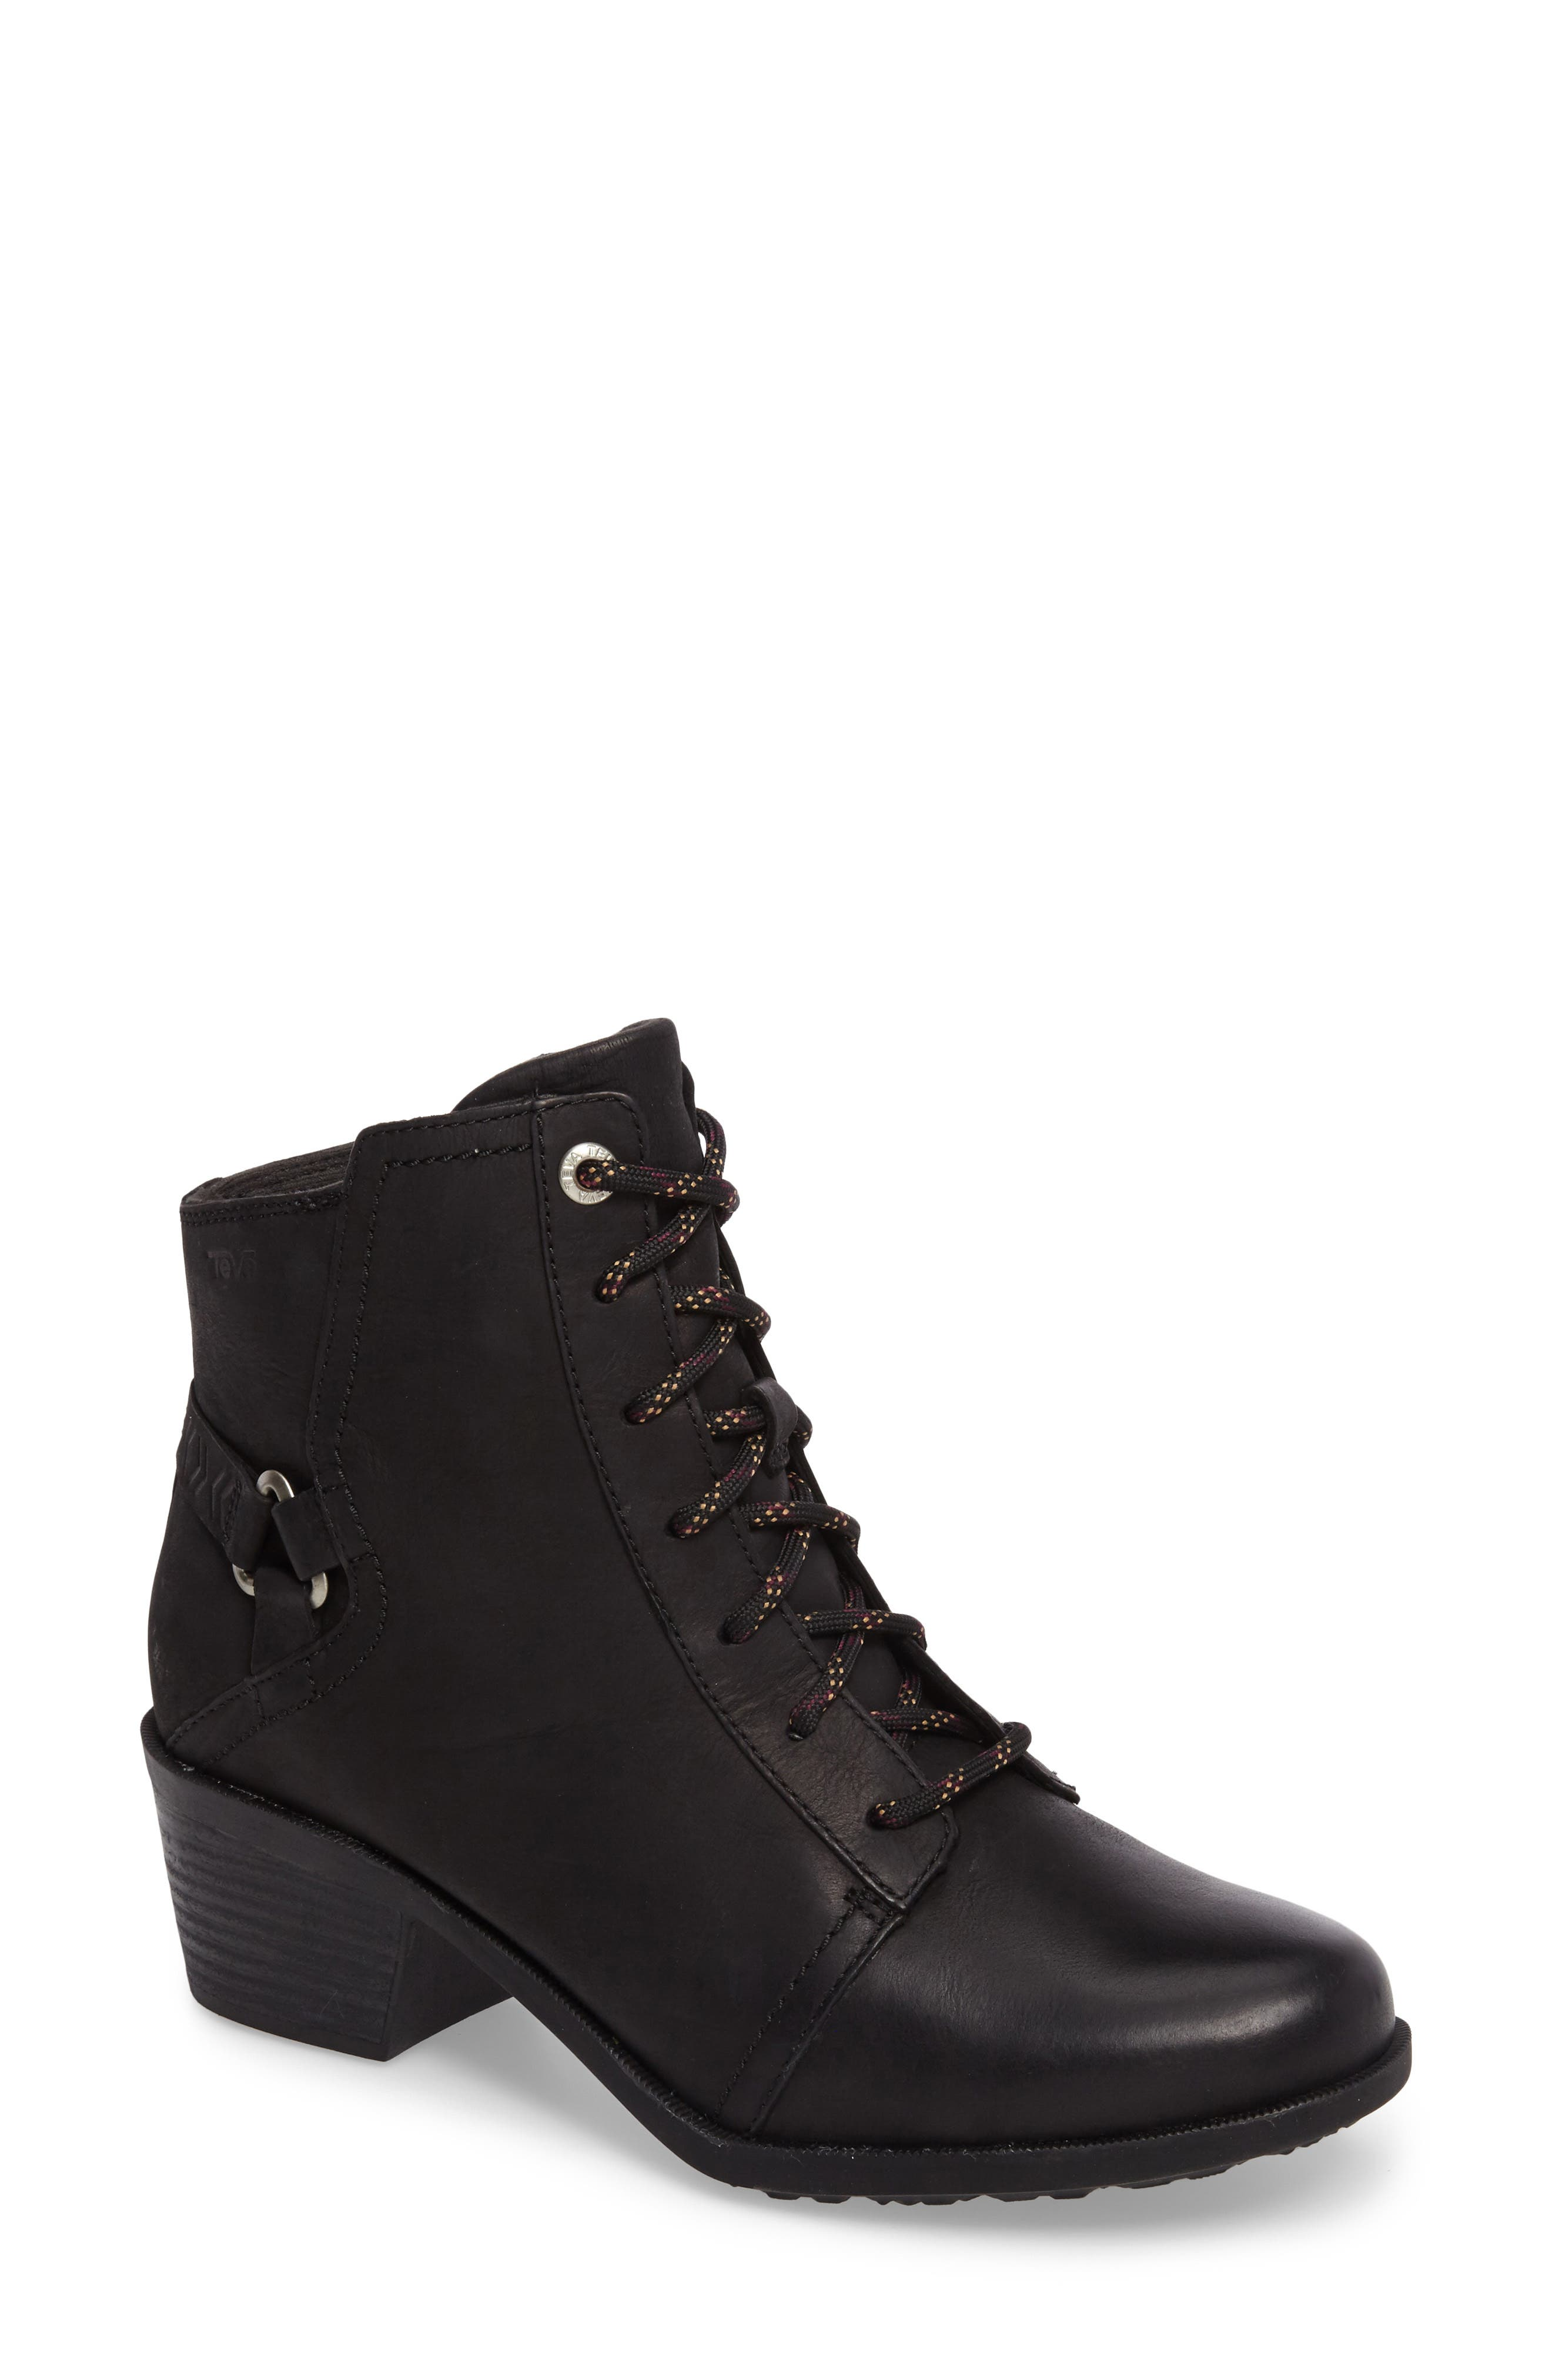 TEVA Foxy Lace-Up Waterproof Boot, Main, color, BLACK LEATHER